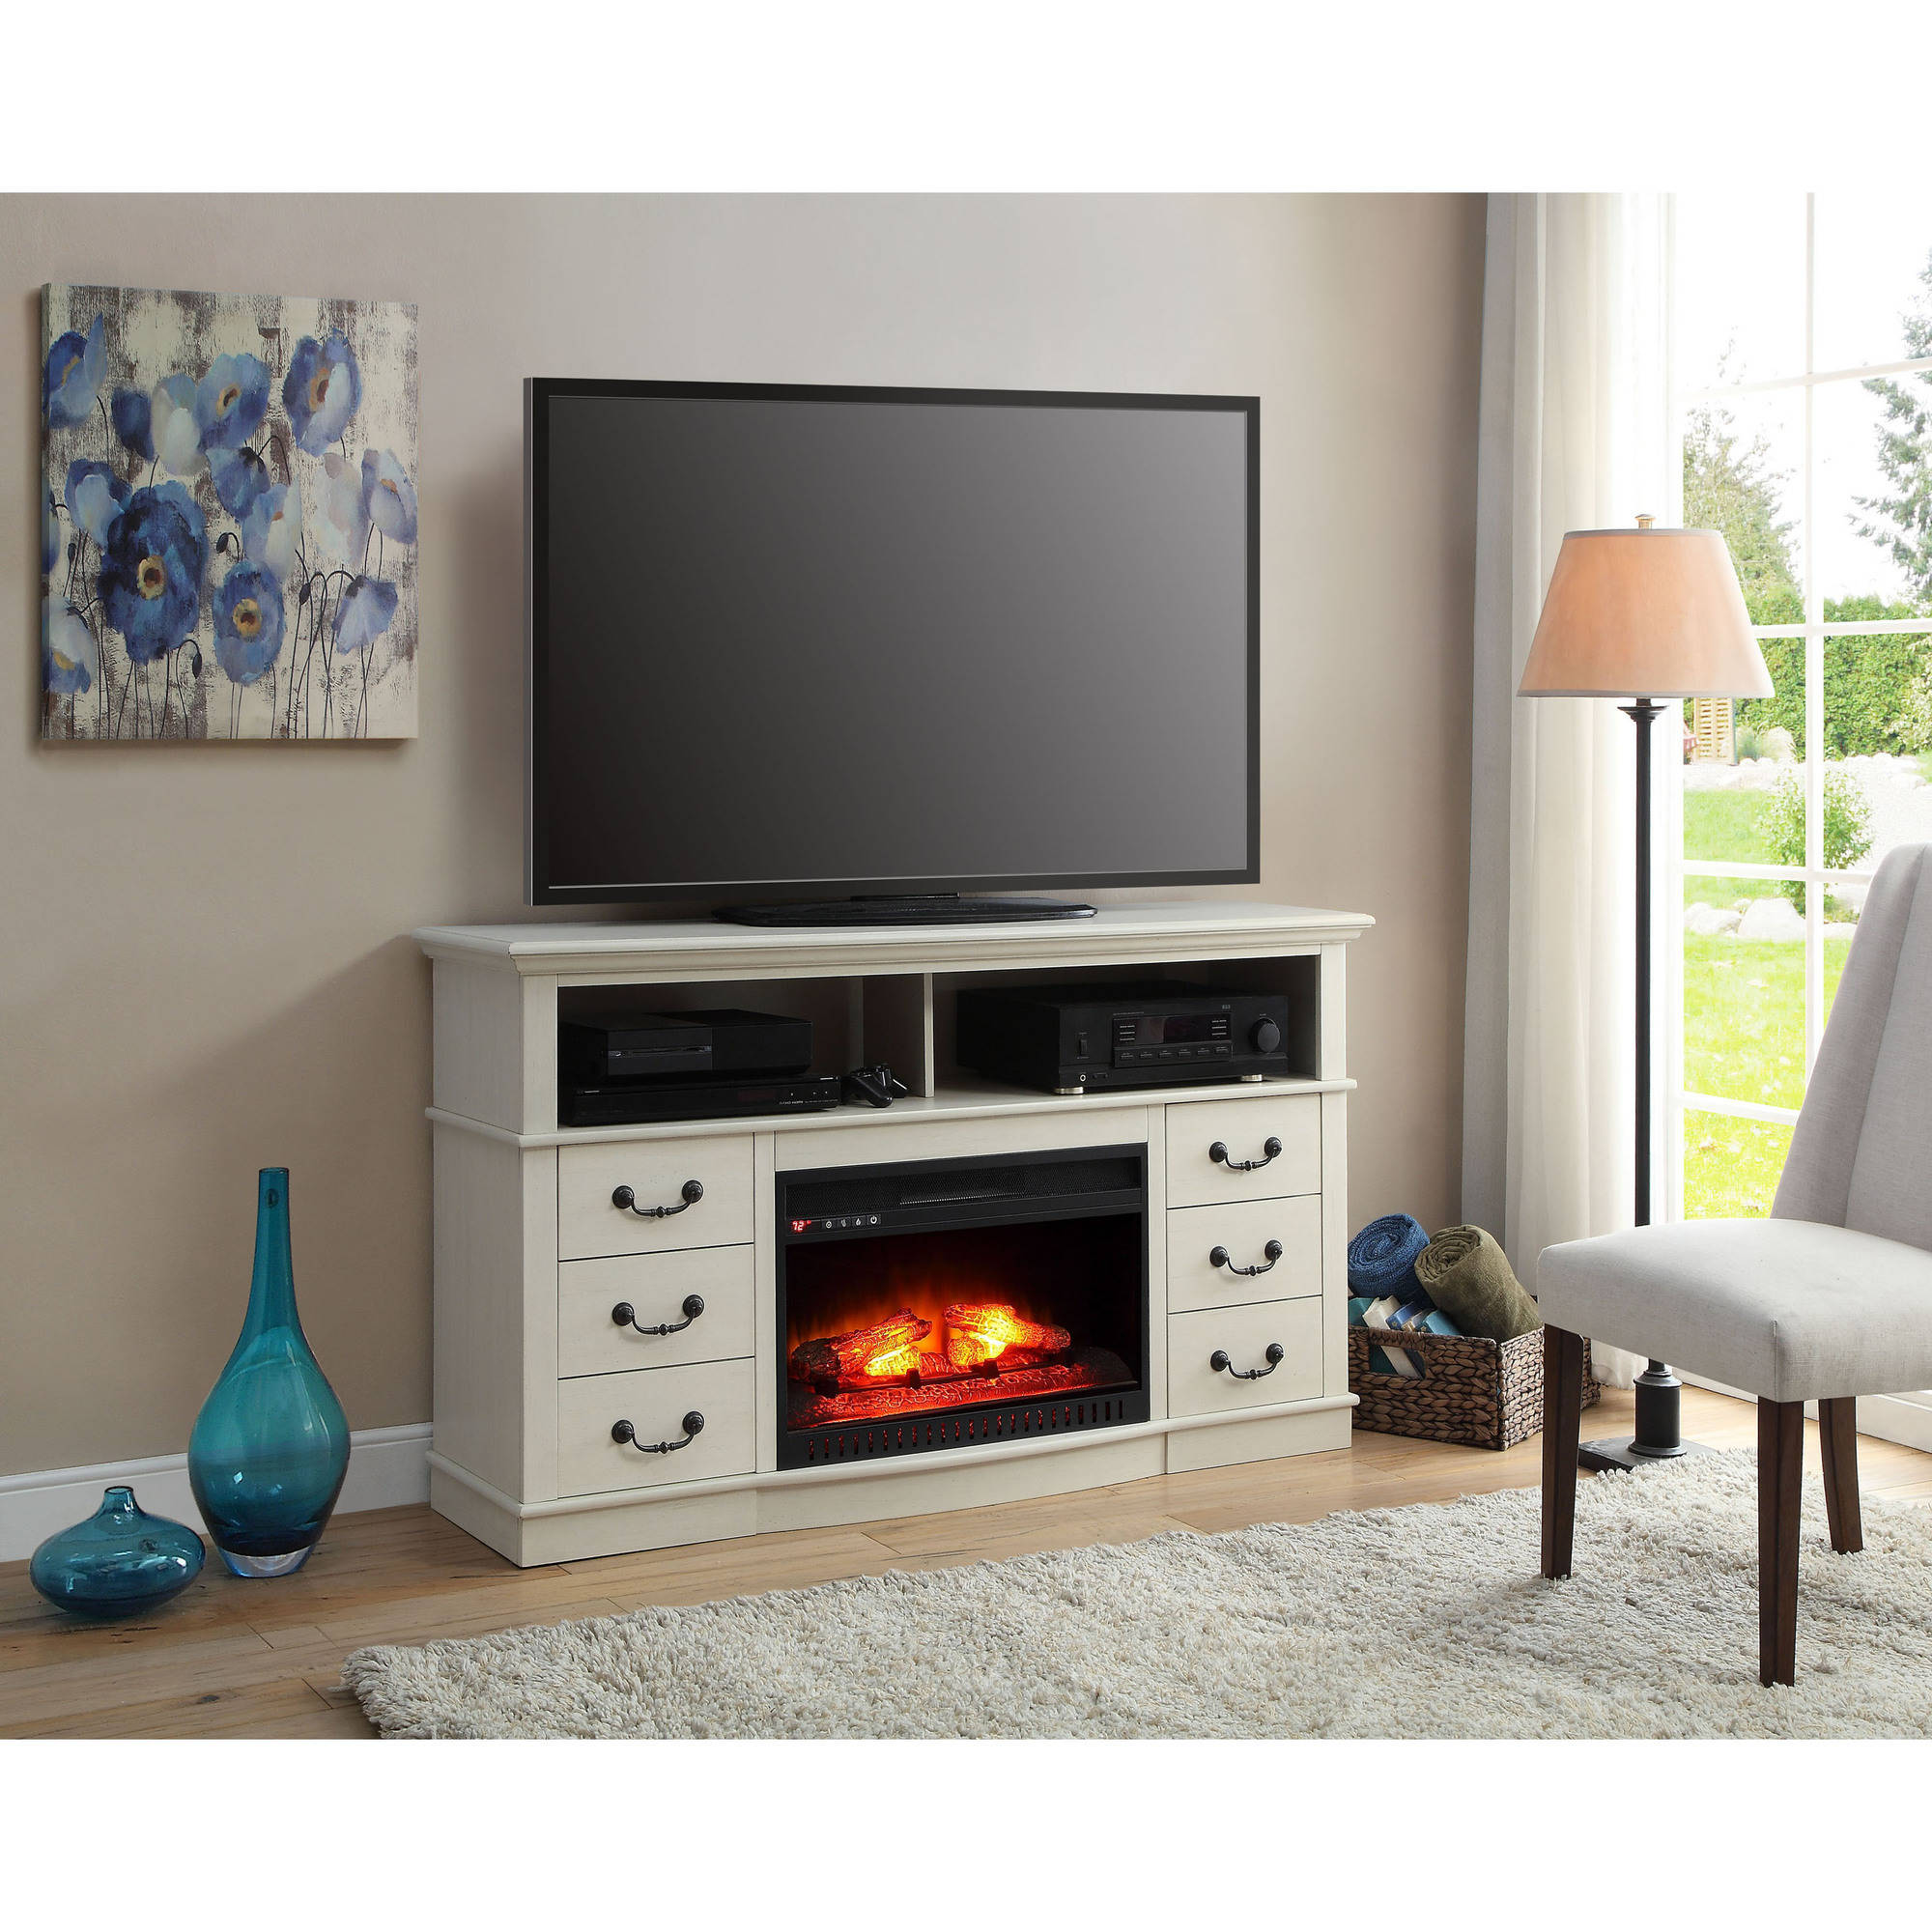 Better homes and gardens 60 media fireplace console for tvs up to 70 multiple finishes walmart com